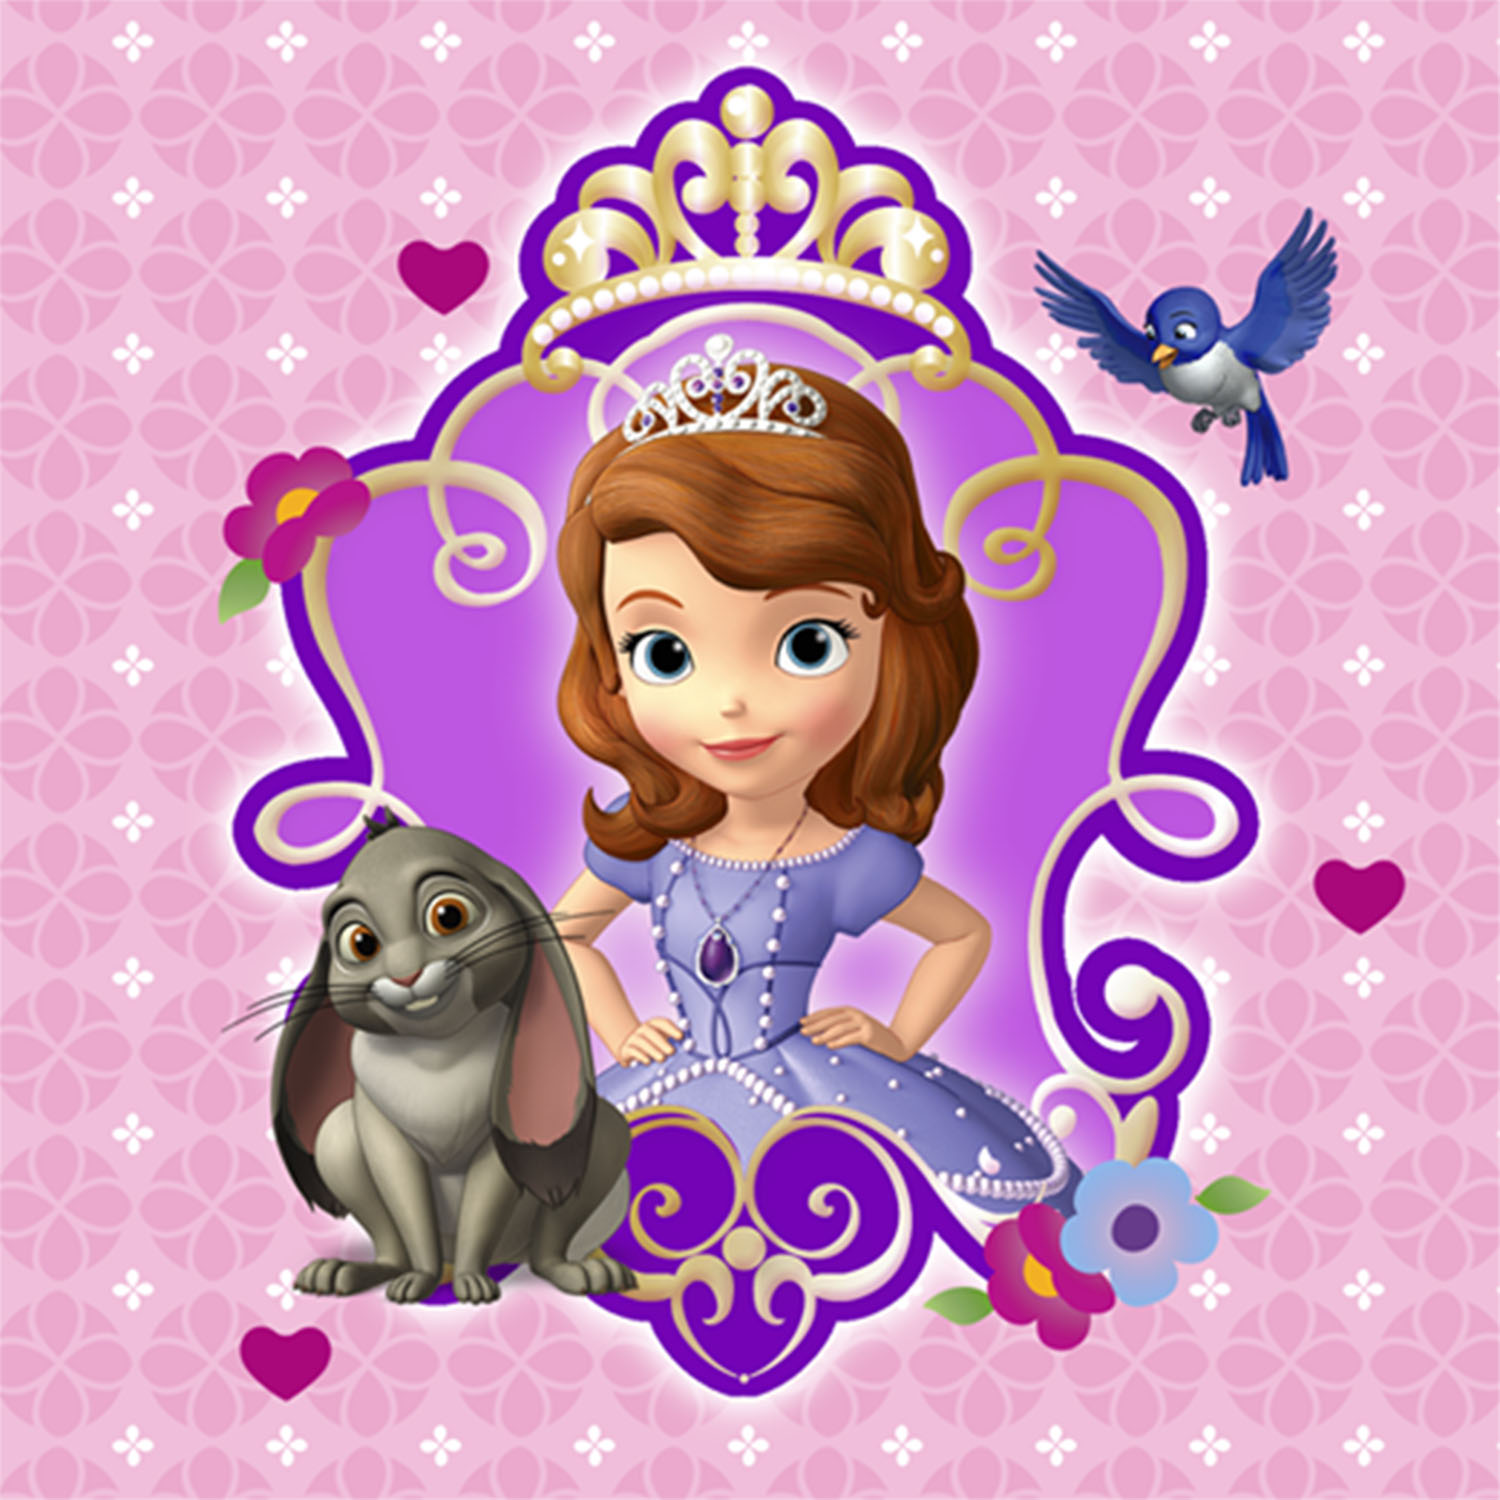 Sofia The First Party Supplies 5 Inch Beverage Napkins At ToyStop